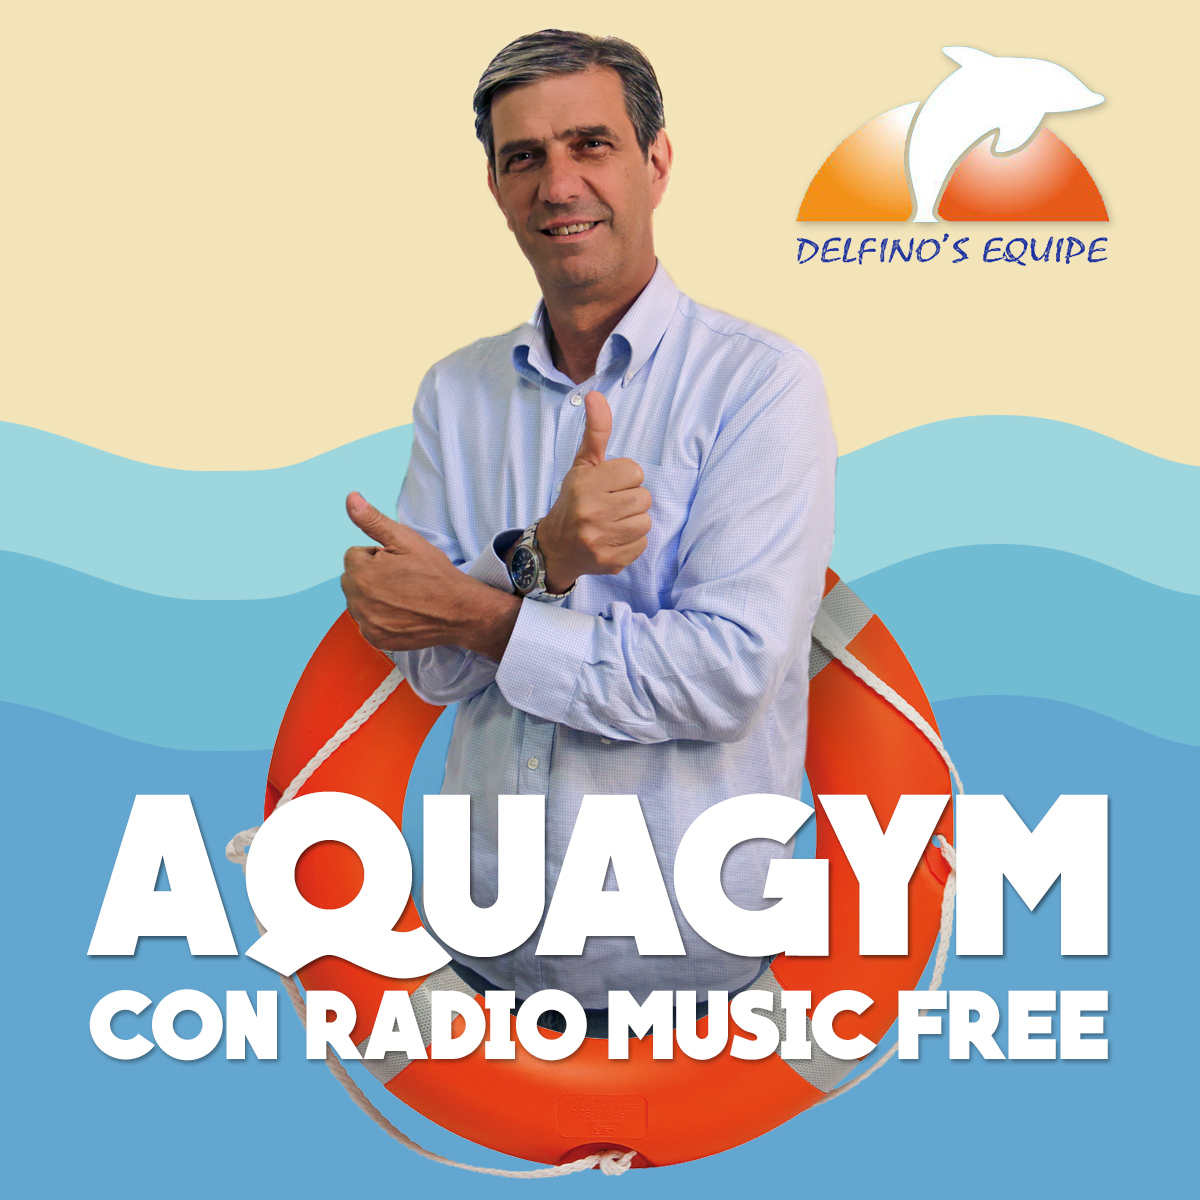 Aquagym con Radio Music Free